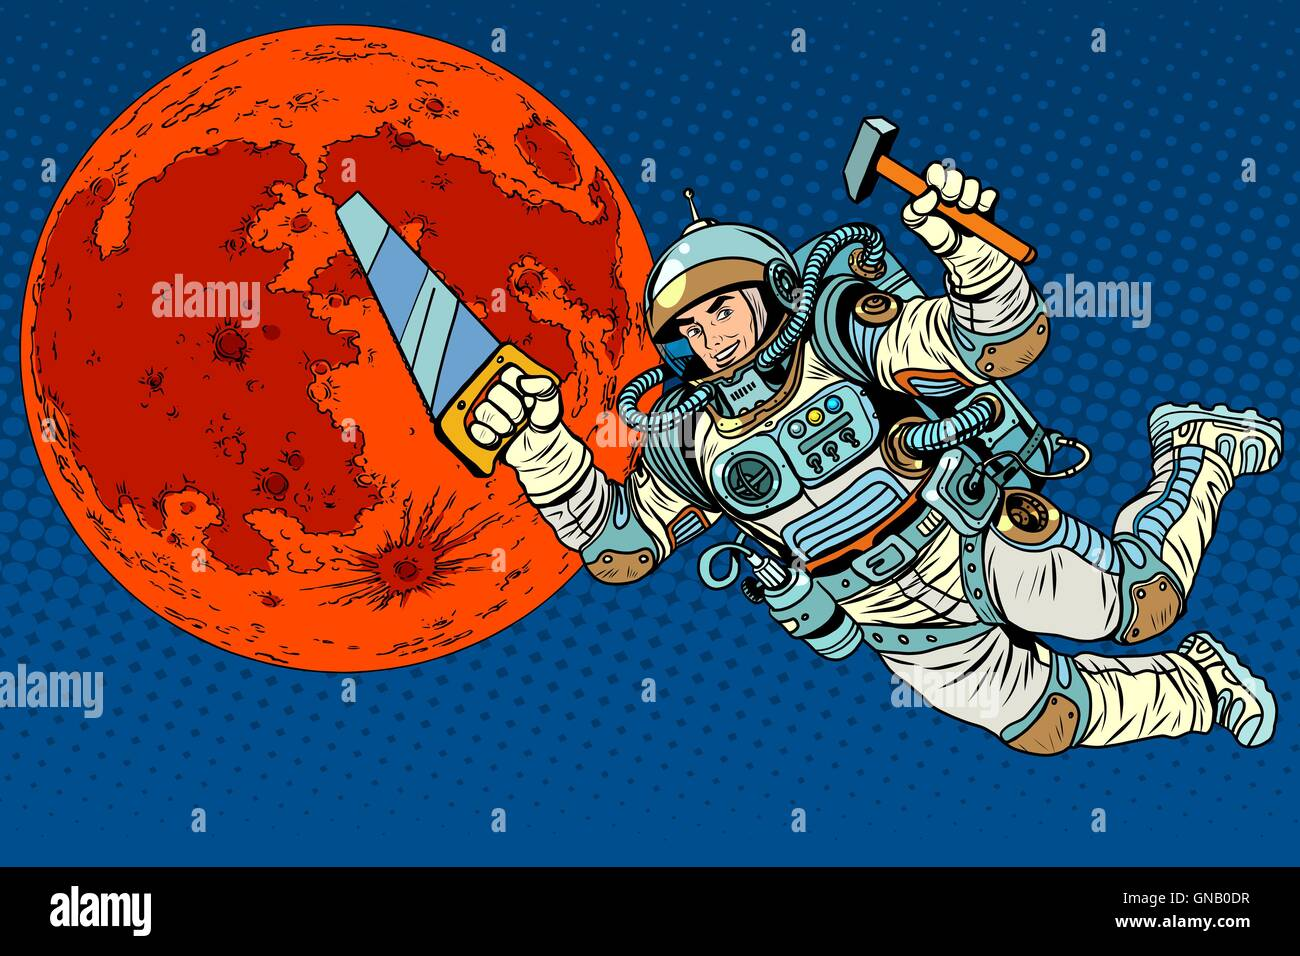 Astronaut with tools for building a colony on Mars - Stock Vector